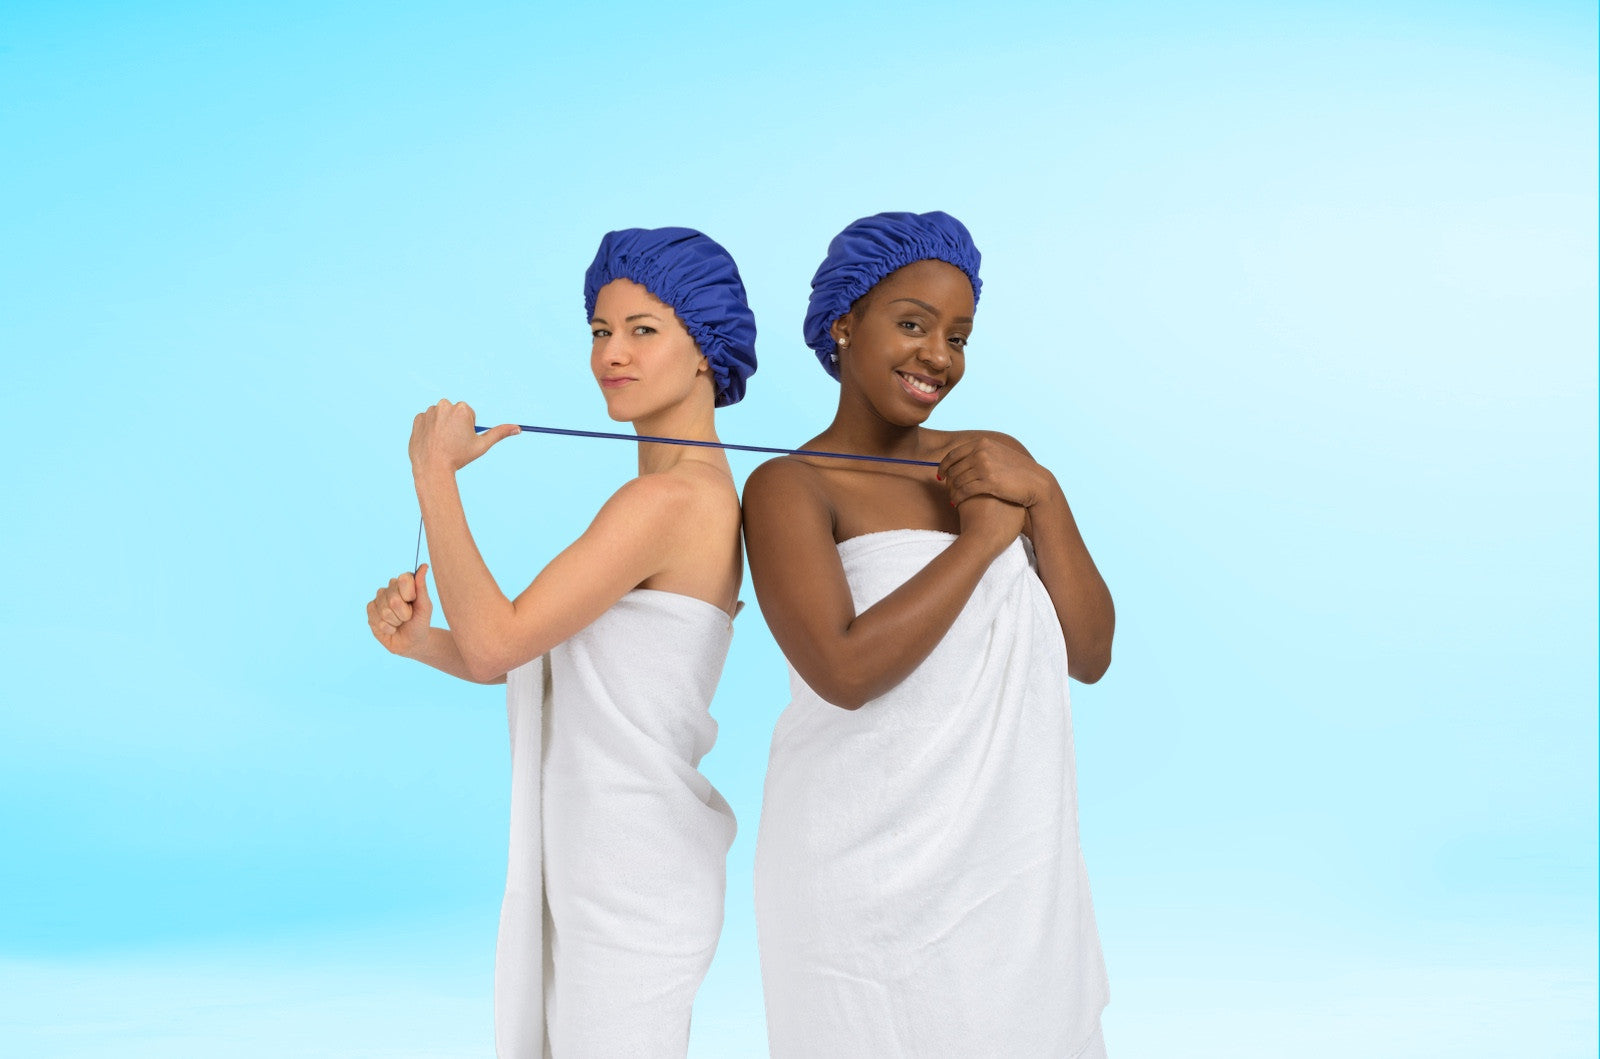 Models wear extra large shower cap made in USA of waterproof breathable fabric (not plastic), with adjustable strap: SUPERPOWER CAP